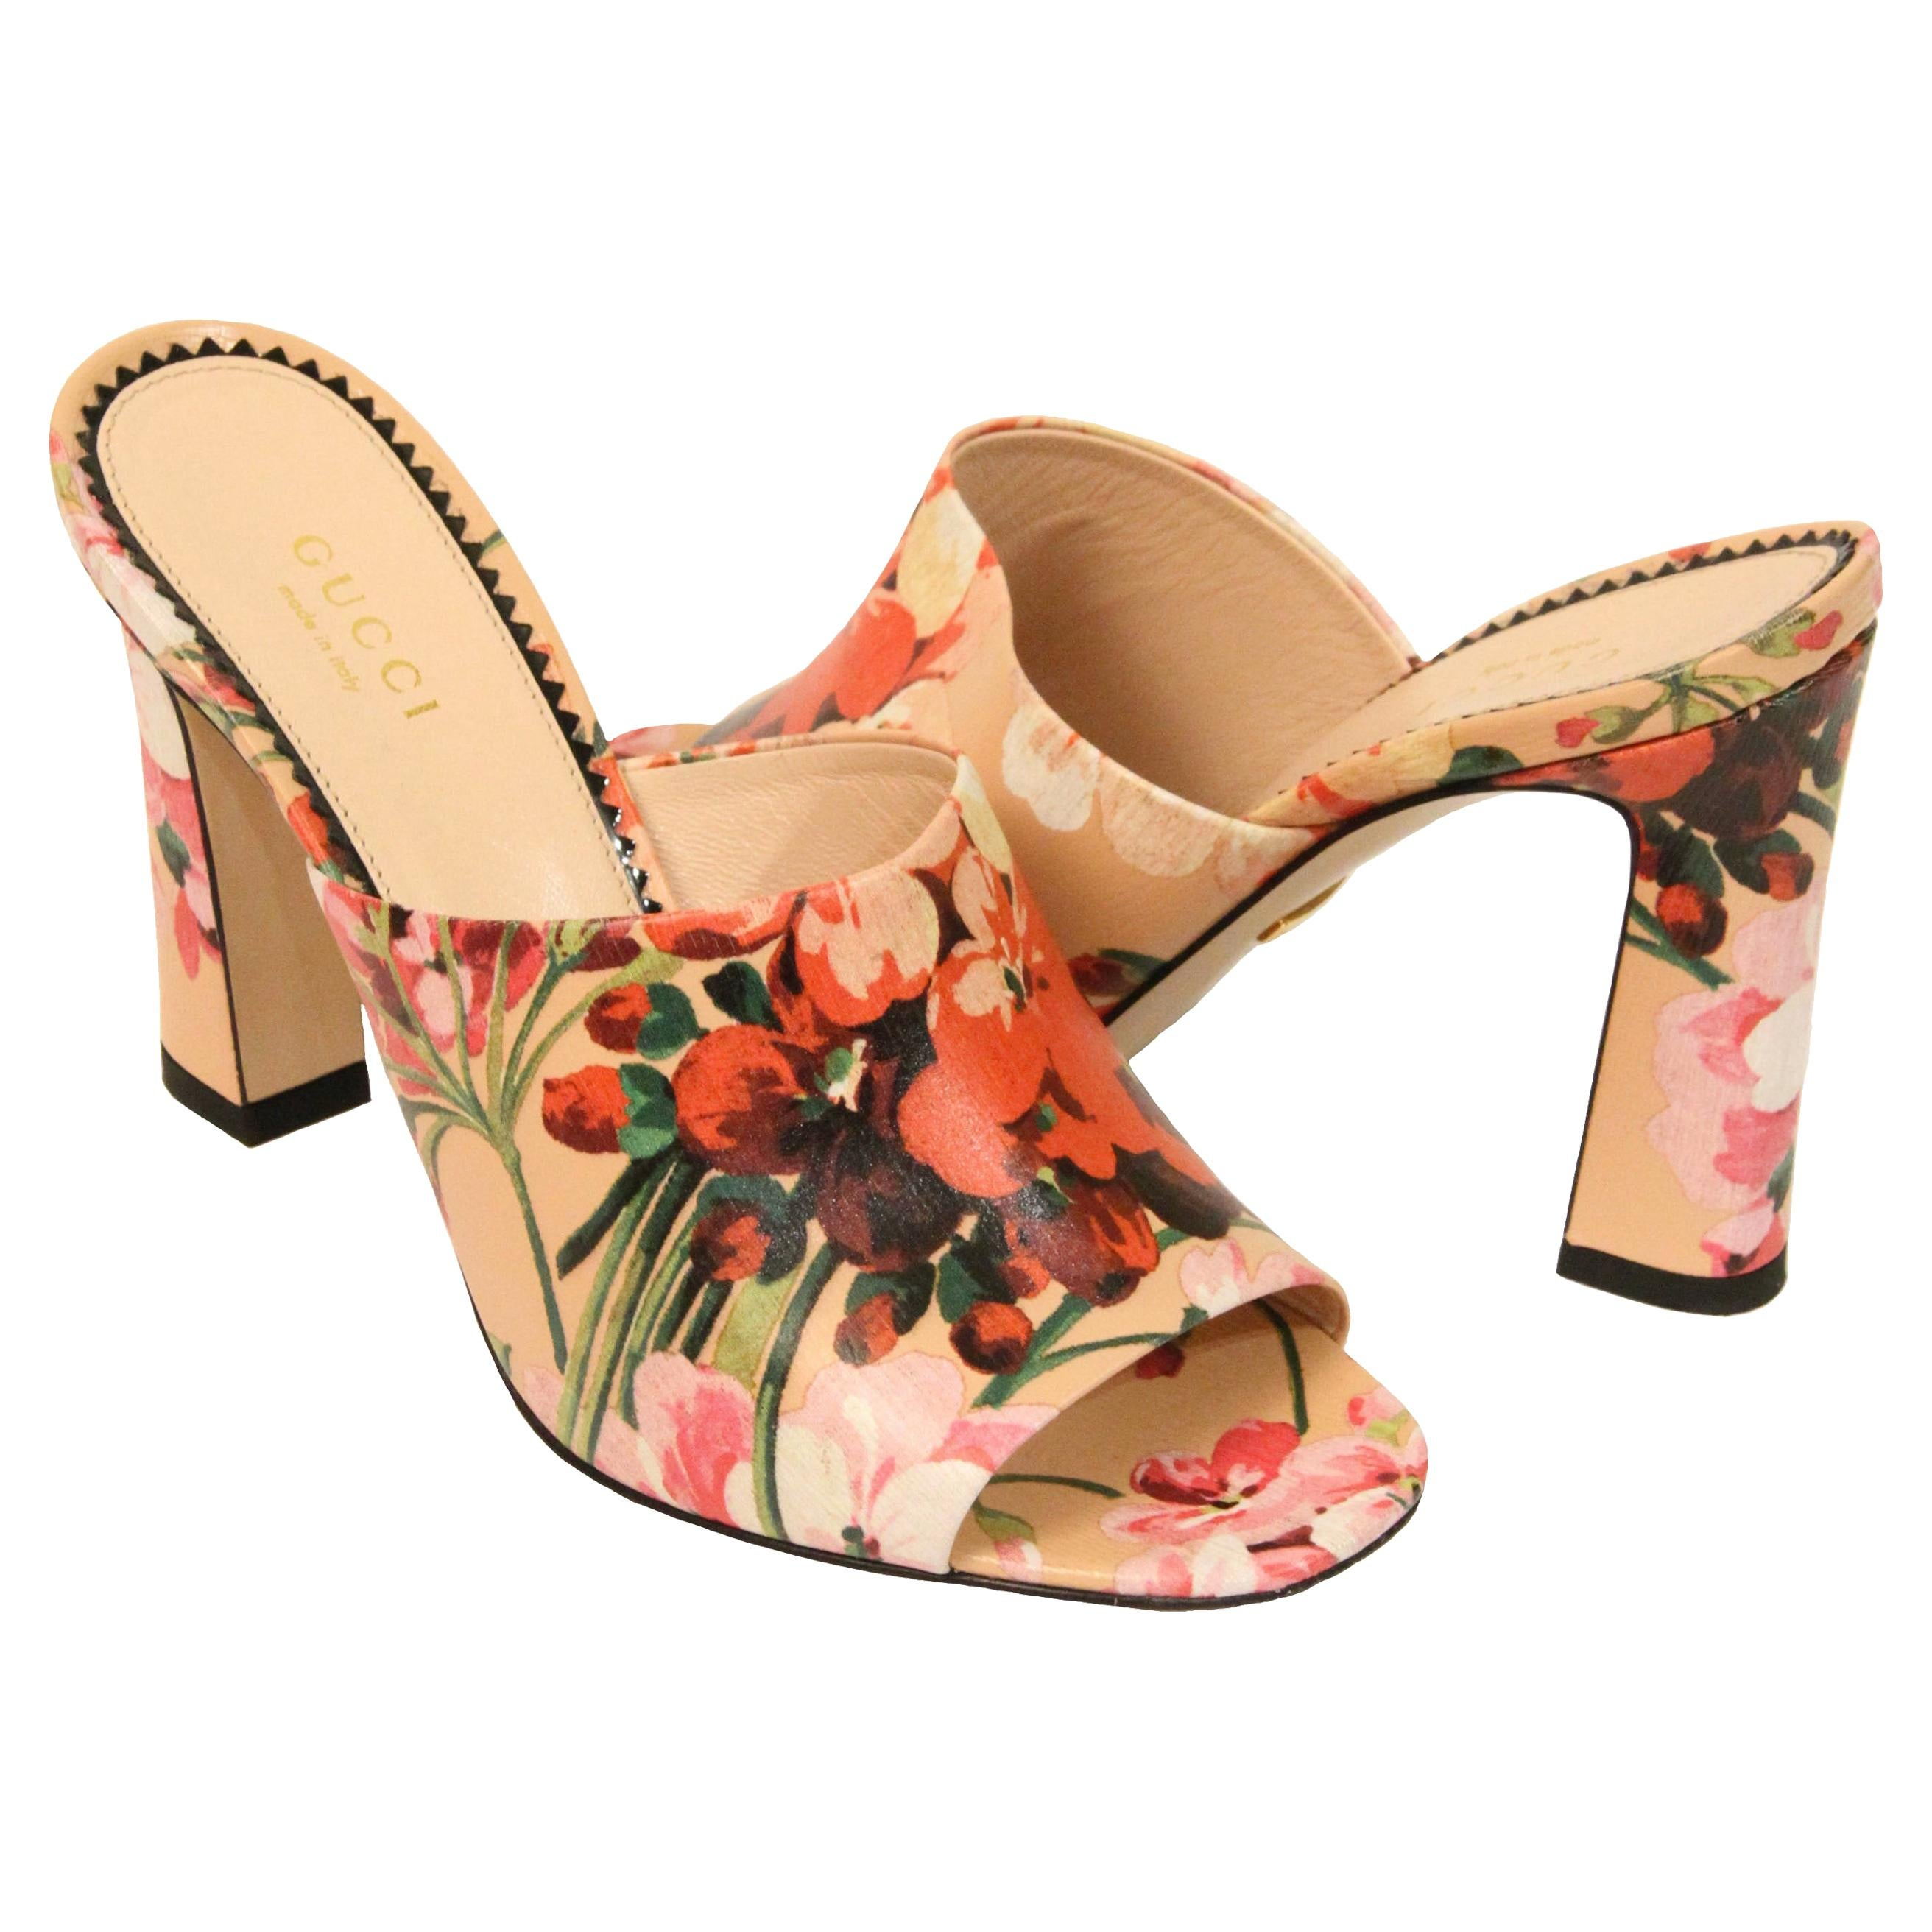 Gucci Shanghai Bloom Print Leather Heeled Mules NEW